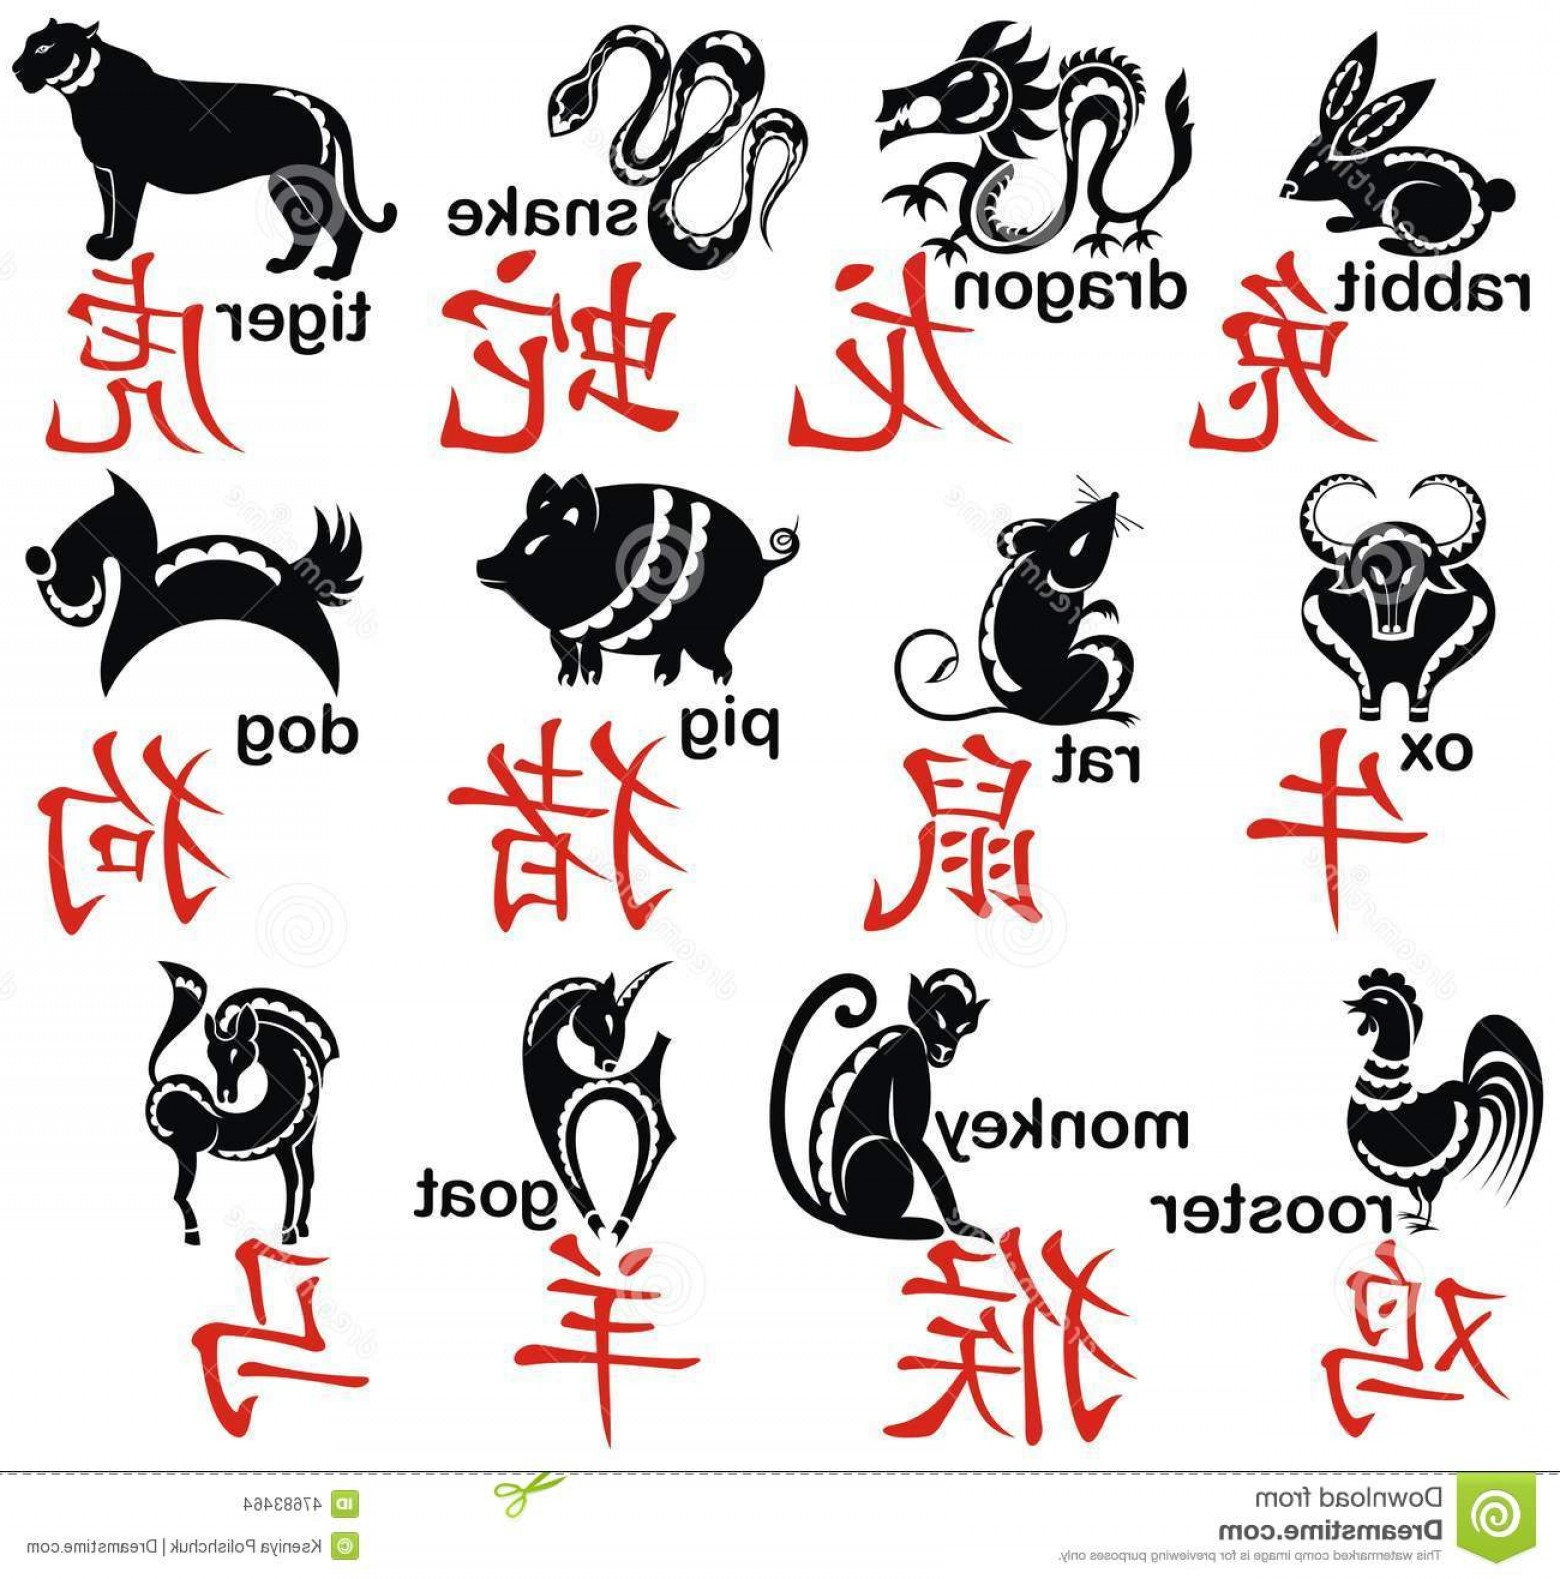 Chinese Zodiac Signs Vector: Stock Illustration Chinese Zodiac Signs Symbols Calligraphy Art Background Image